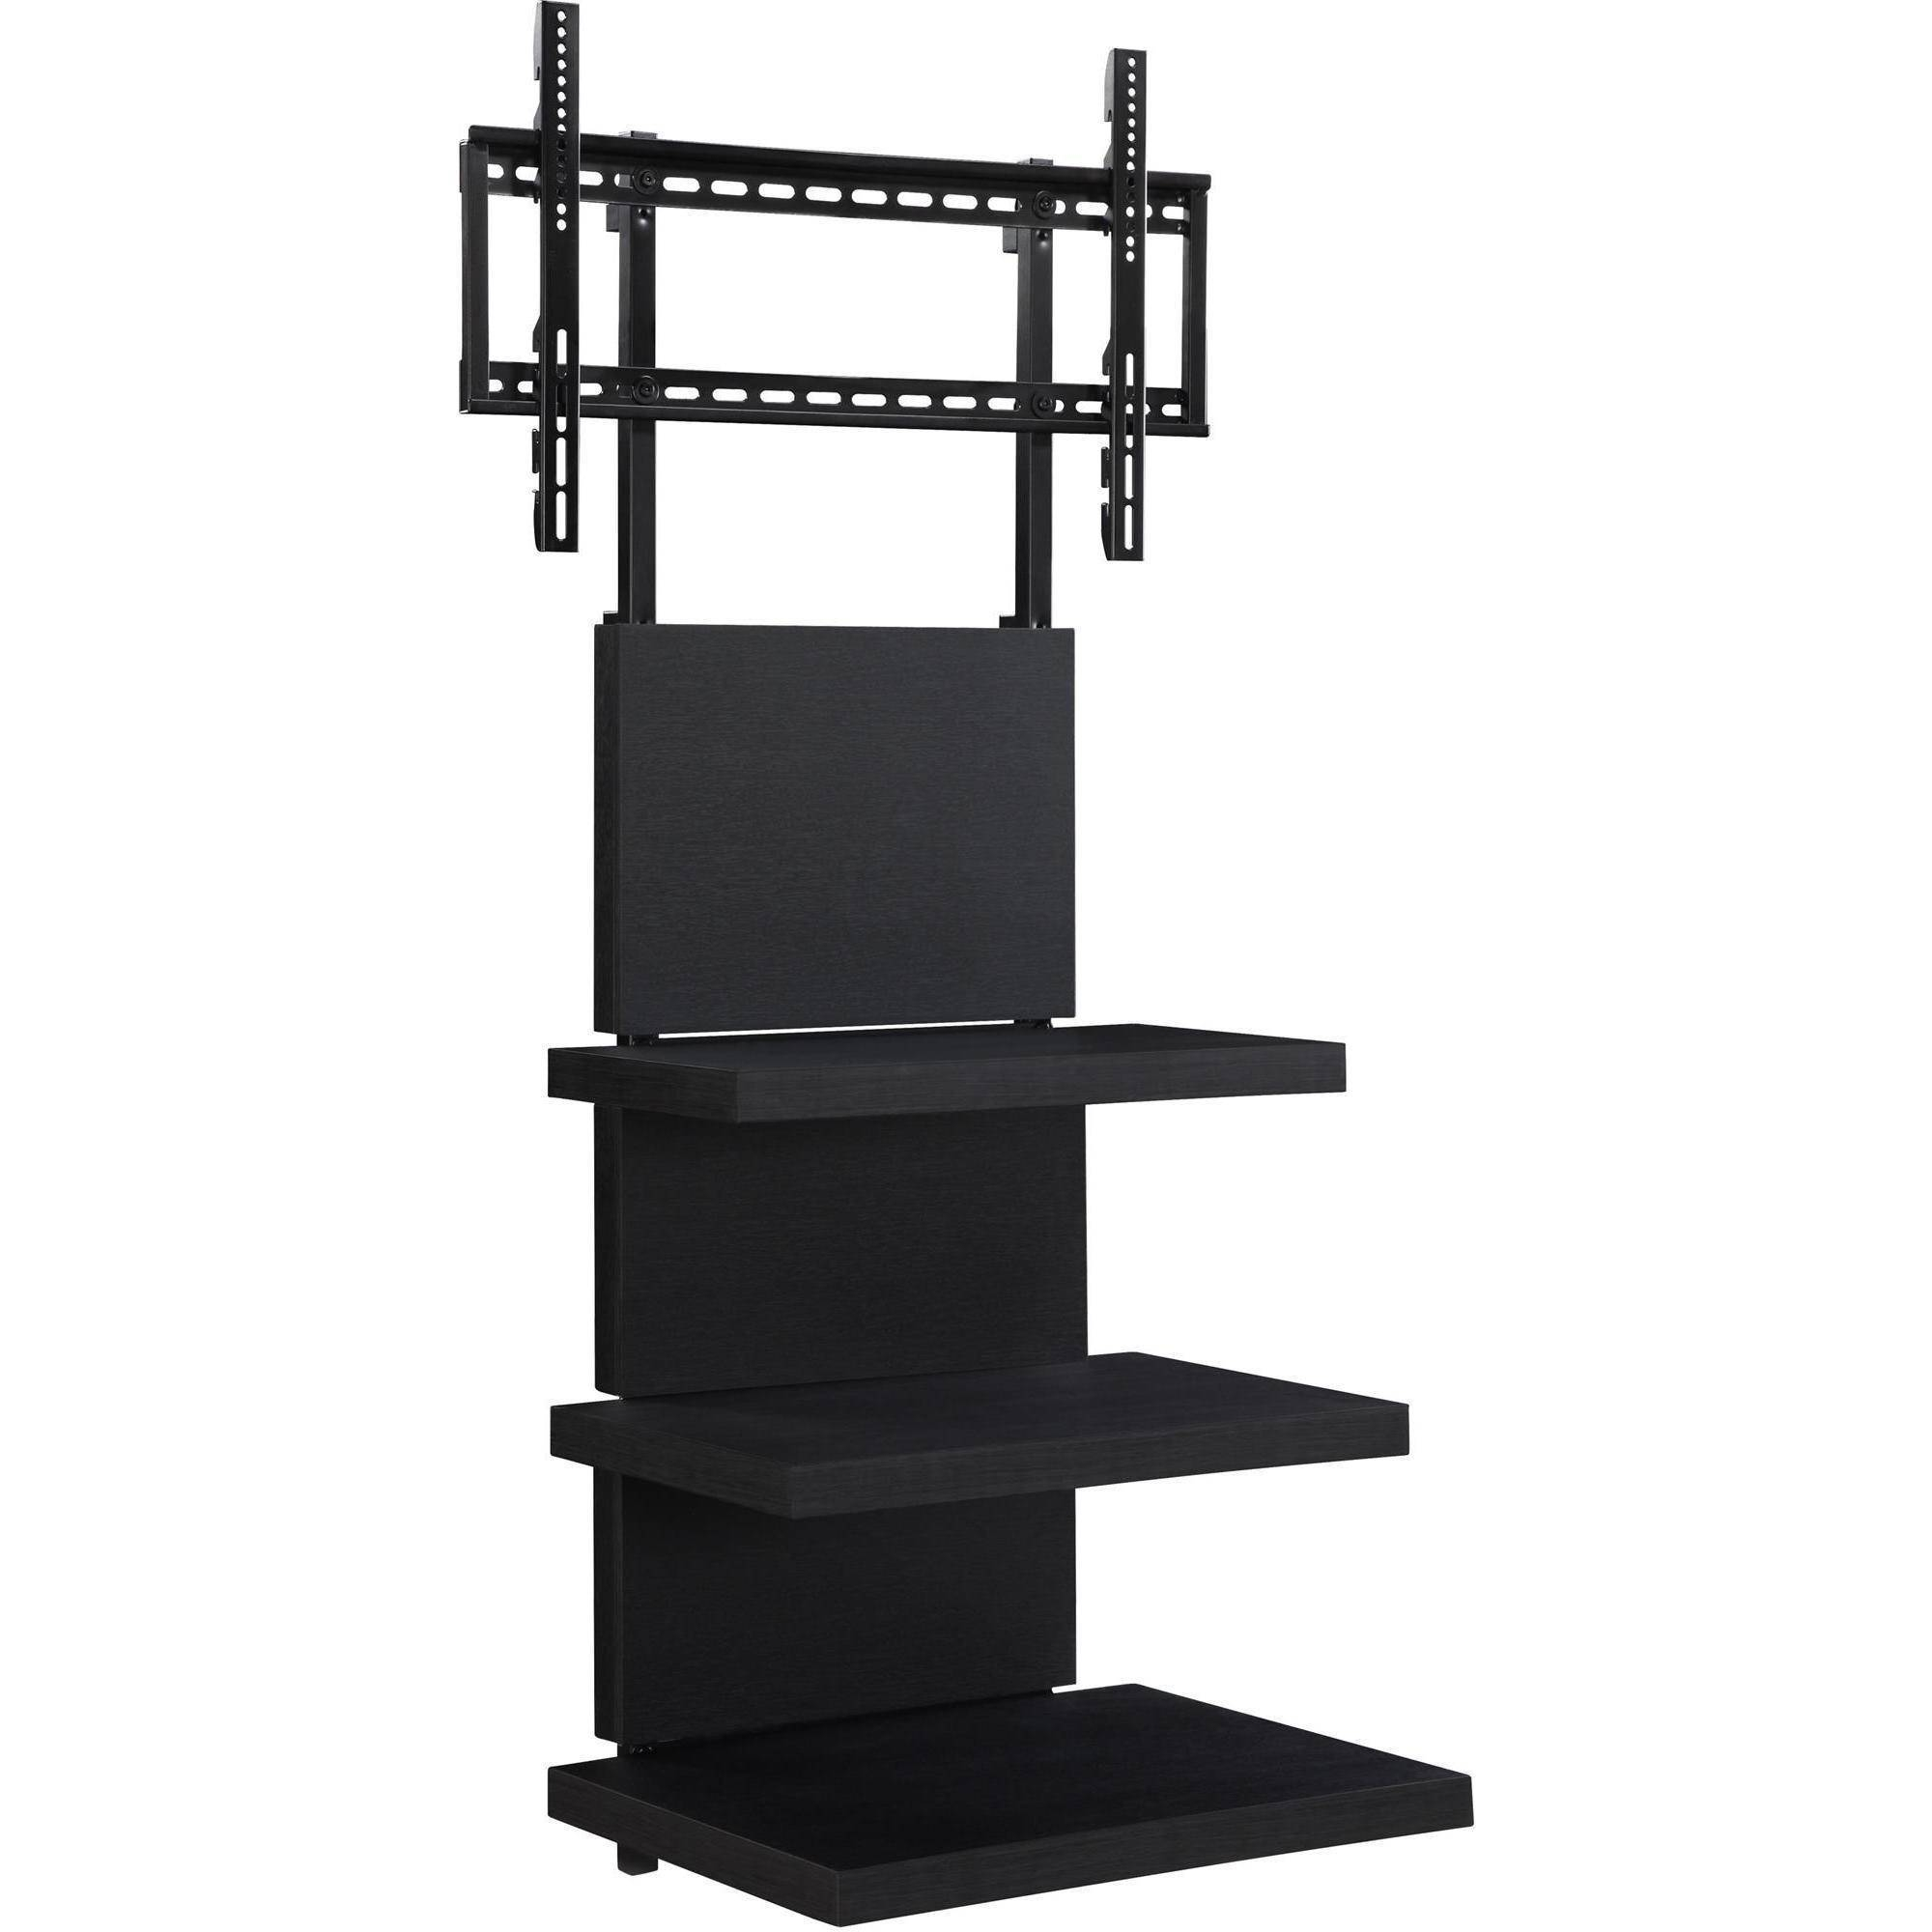 Wall Shelves Design Wall Shelves At Walmart Hob Lob Cheap Pertaining To Wall Mounted Black Glass Shelves (View 11 of 15)